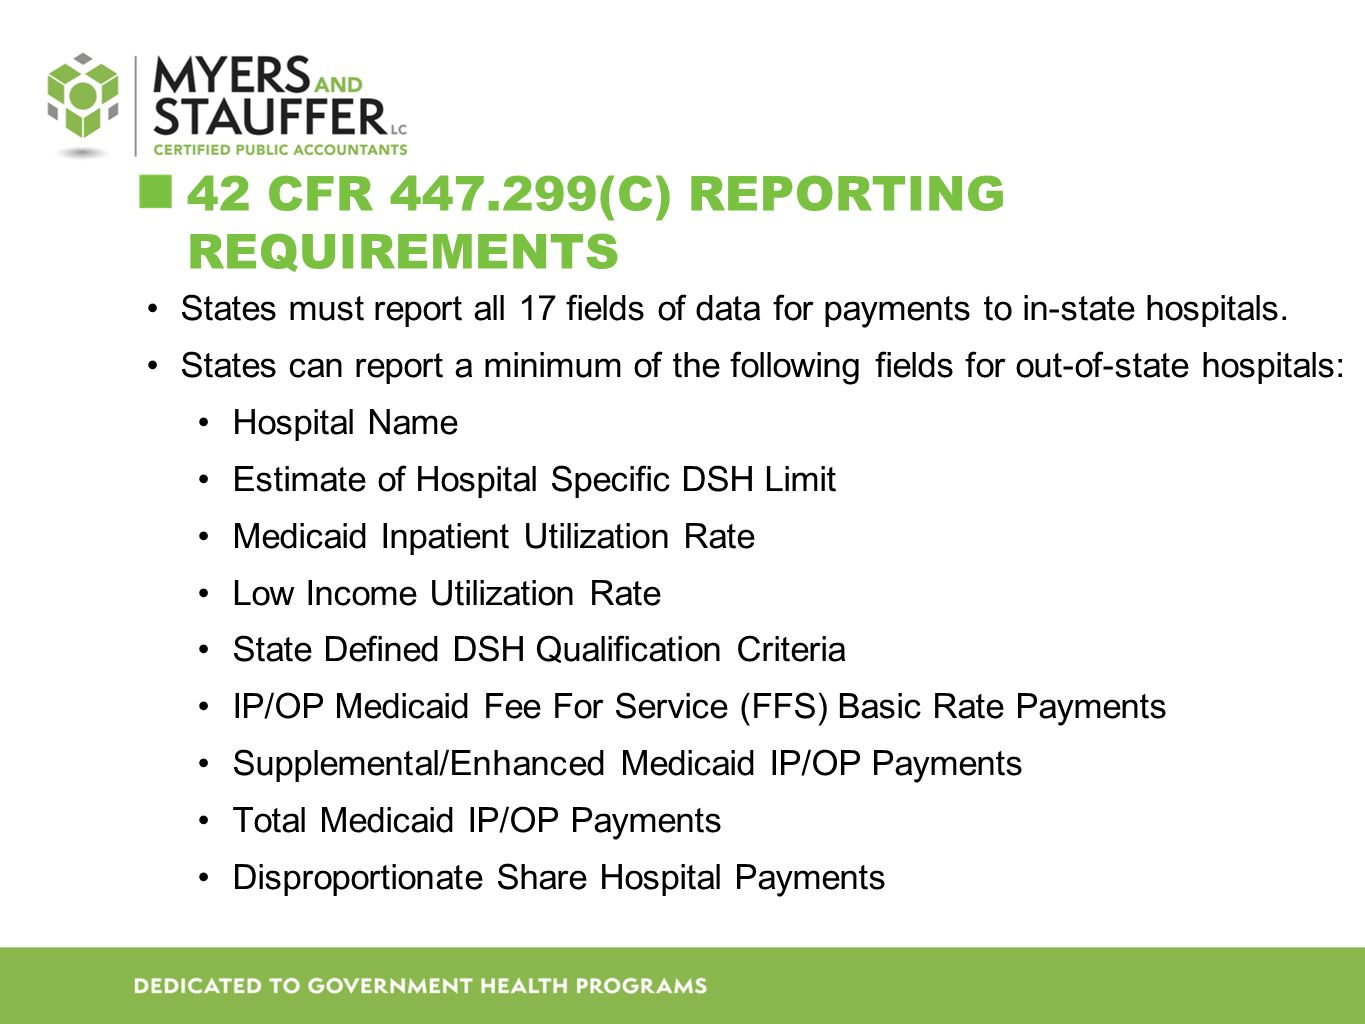 FINDINGS FROM SFY 2009 DSH AUDIT 46 hospitals exceeded the DSH Limit due to lack of documentation from hospitals.